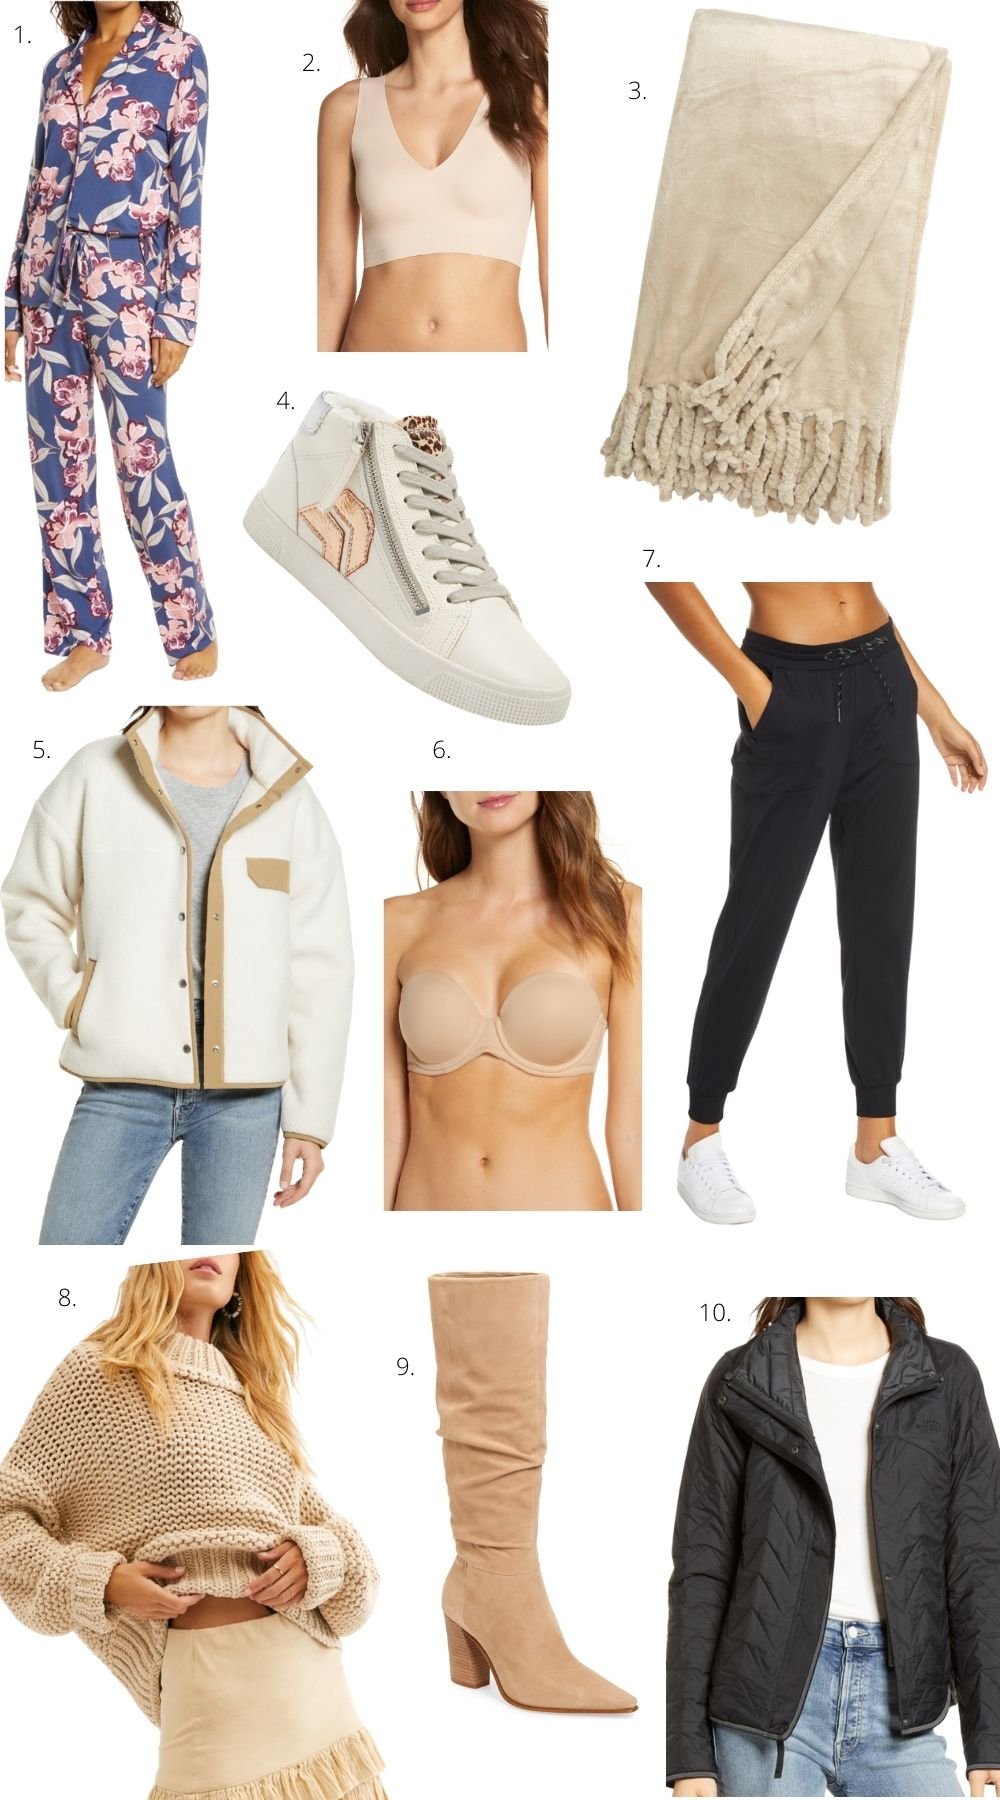 nordstrom, anniversary sale, nordstrom anniversary sale, nsale, nordy girl, top 10 picks, style your senses